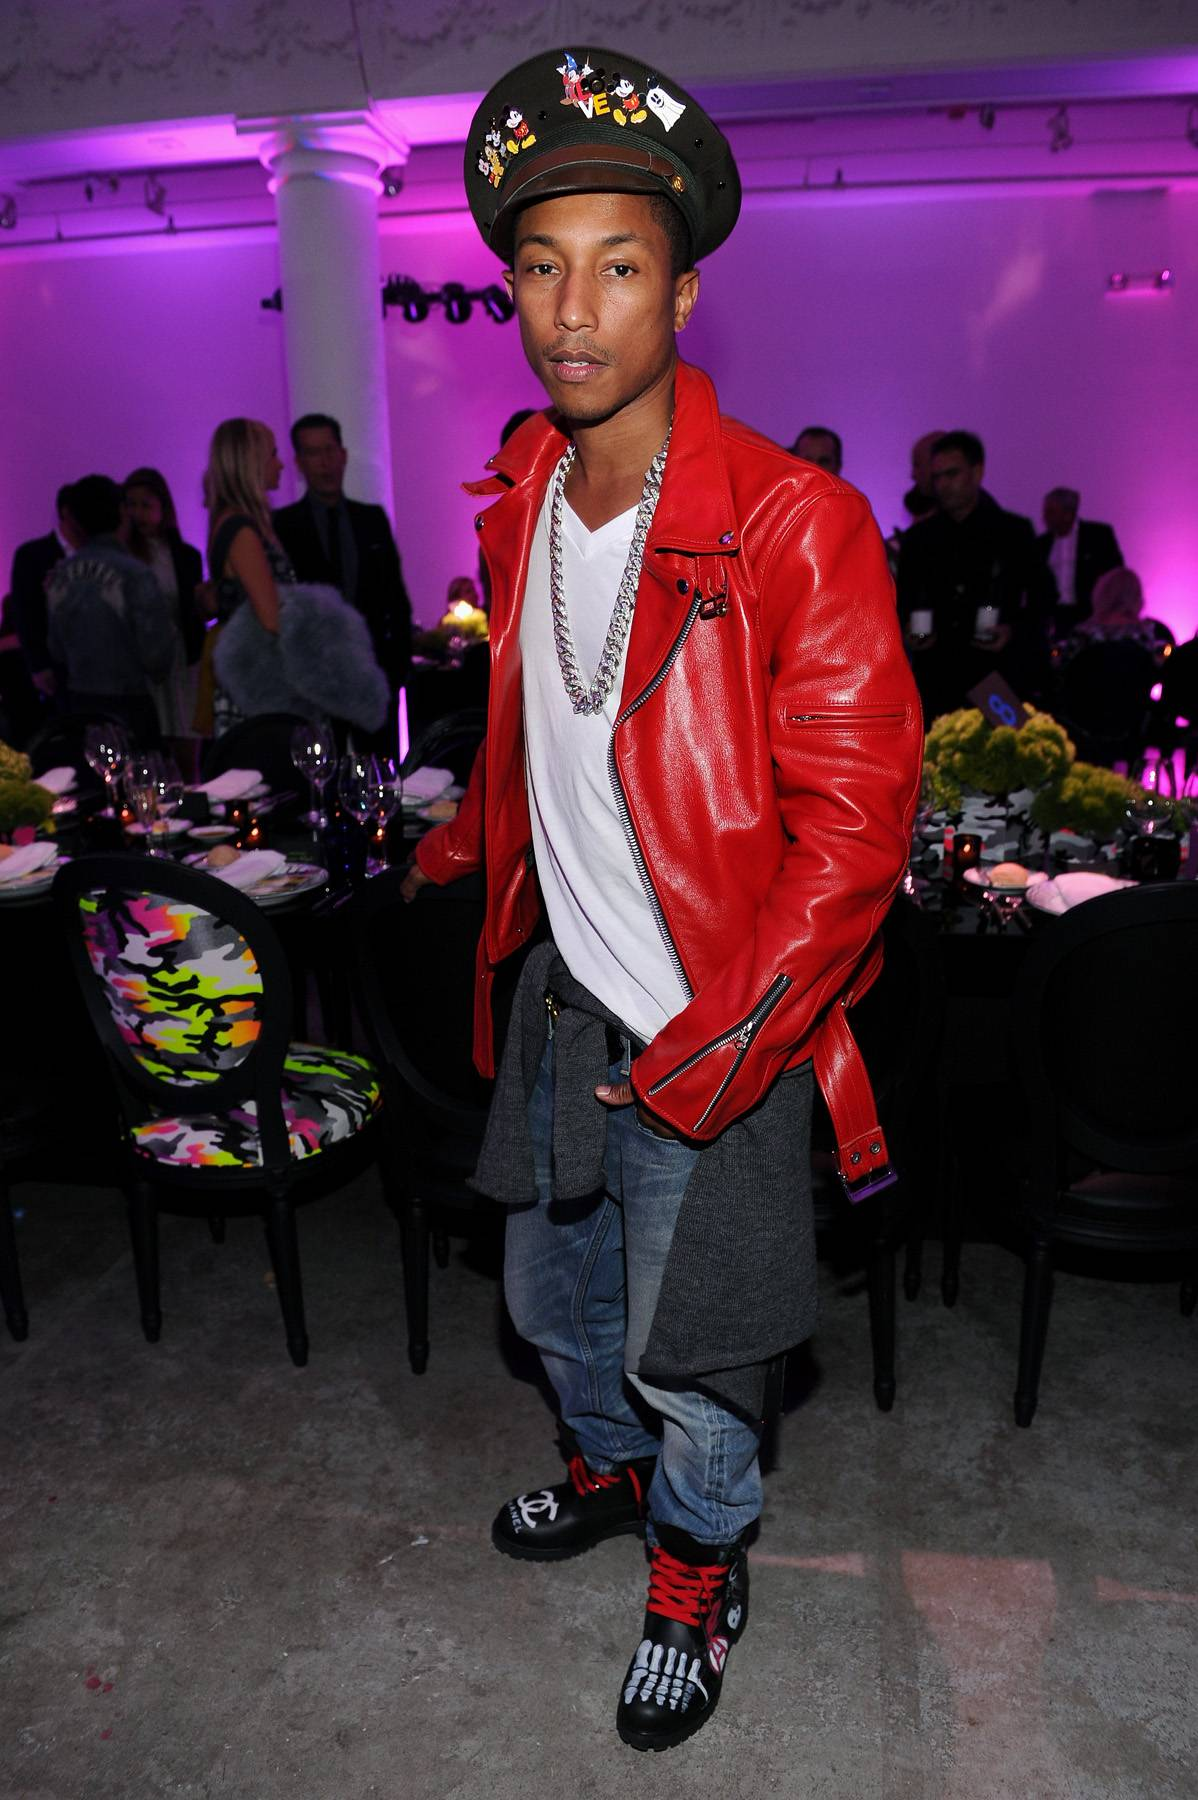 Pharrell Williams\r - Pharrell means a lot to hip hop because of the beats that he's made, some of the lyrics that he's dropped, but he also made skateboard culture quite chic and very hip hop with his Billionaire Boys Club clothing line and sneaker line, Ice Cream.\r(Photo: Dimitrios Kambouris/Getty Images)